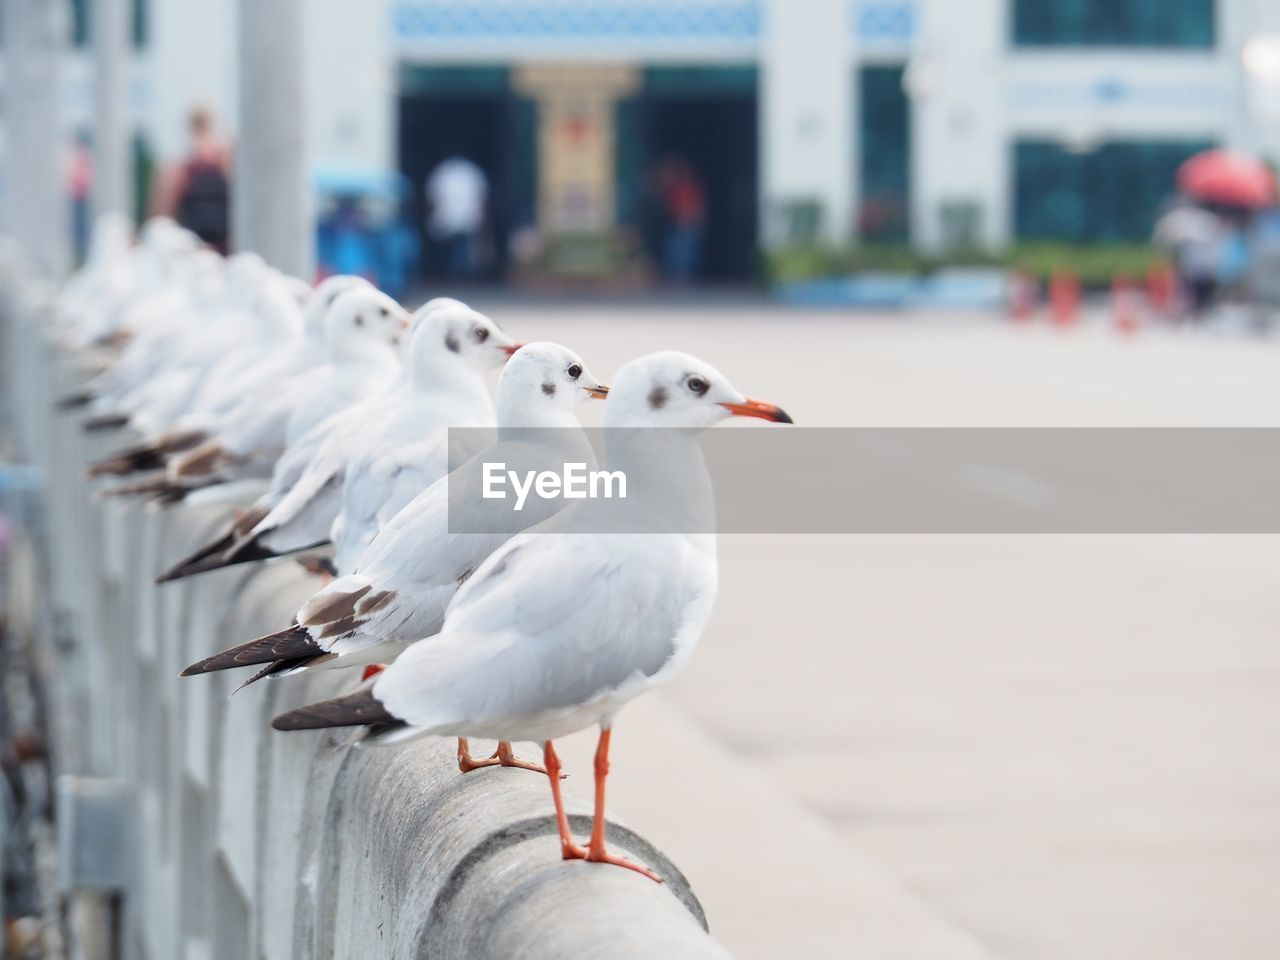 bird, animal, animal themes, animals in the wild, vertebrate, animal wildlife, focus on foreground, group of animals, perching, seagull, day, incidental people, close-up, architecture, city, outdoors, railing, white color, footpath